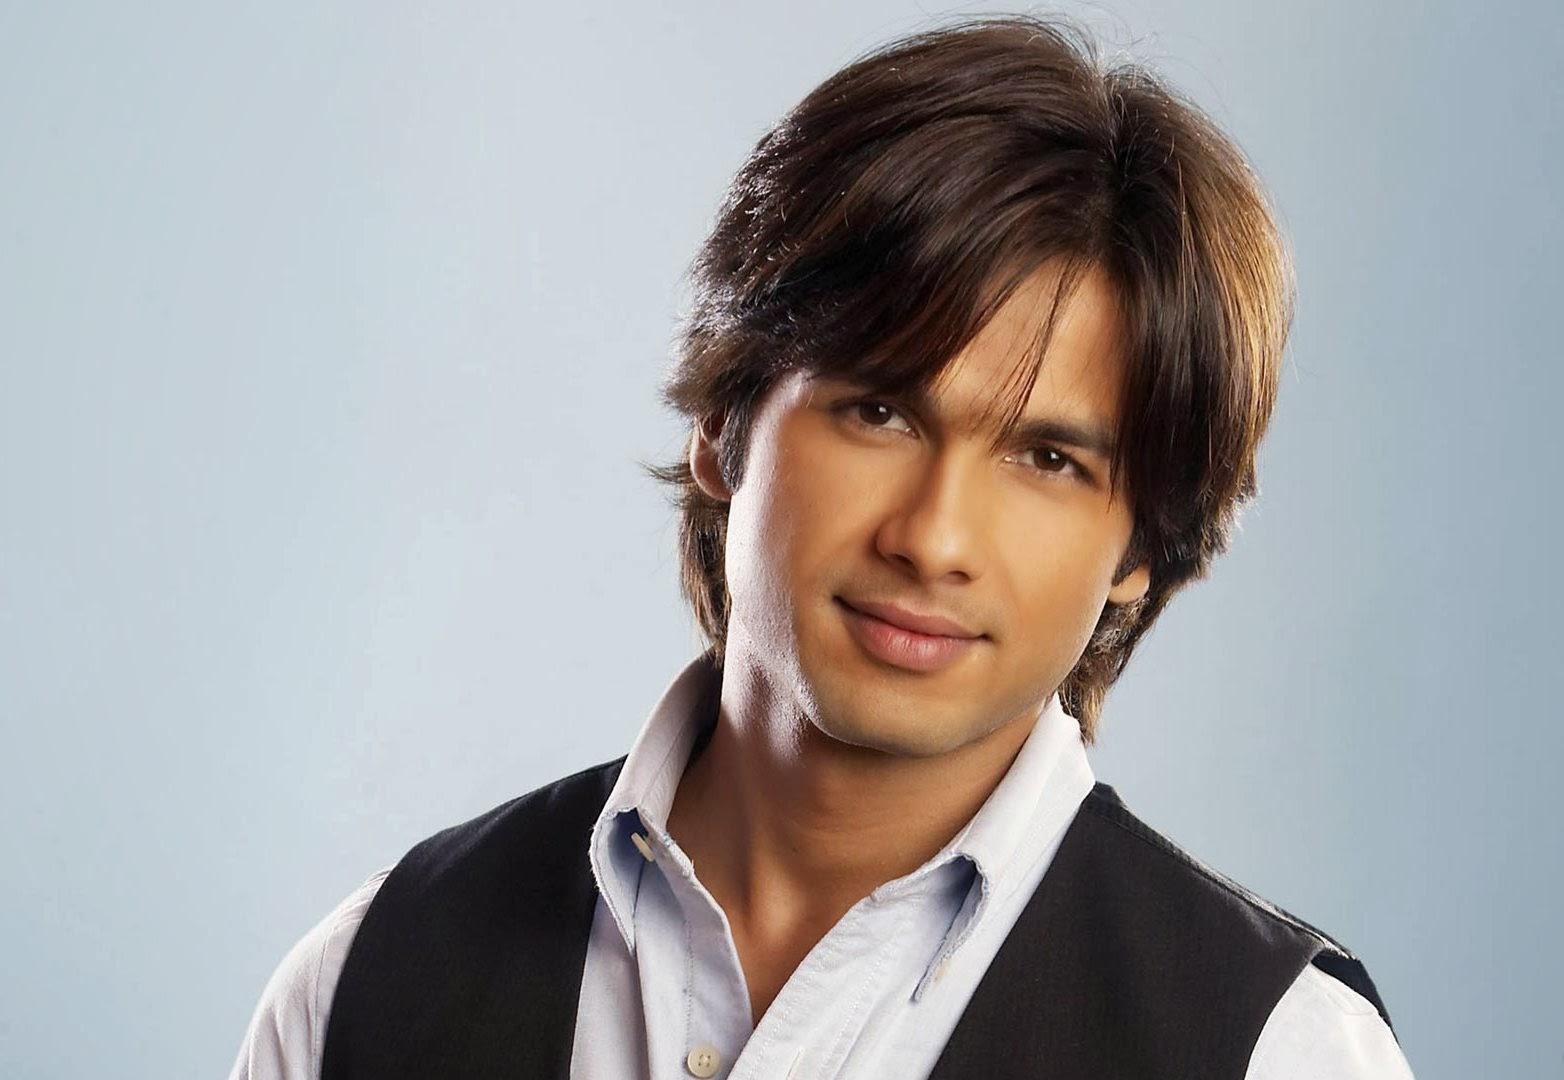 Shahid Kapoor Body Diet And Workout Plan Top Ten Indian